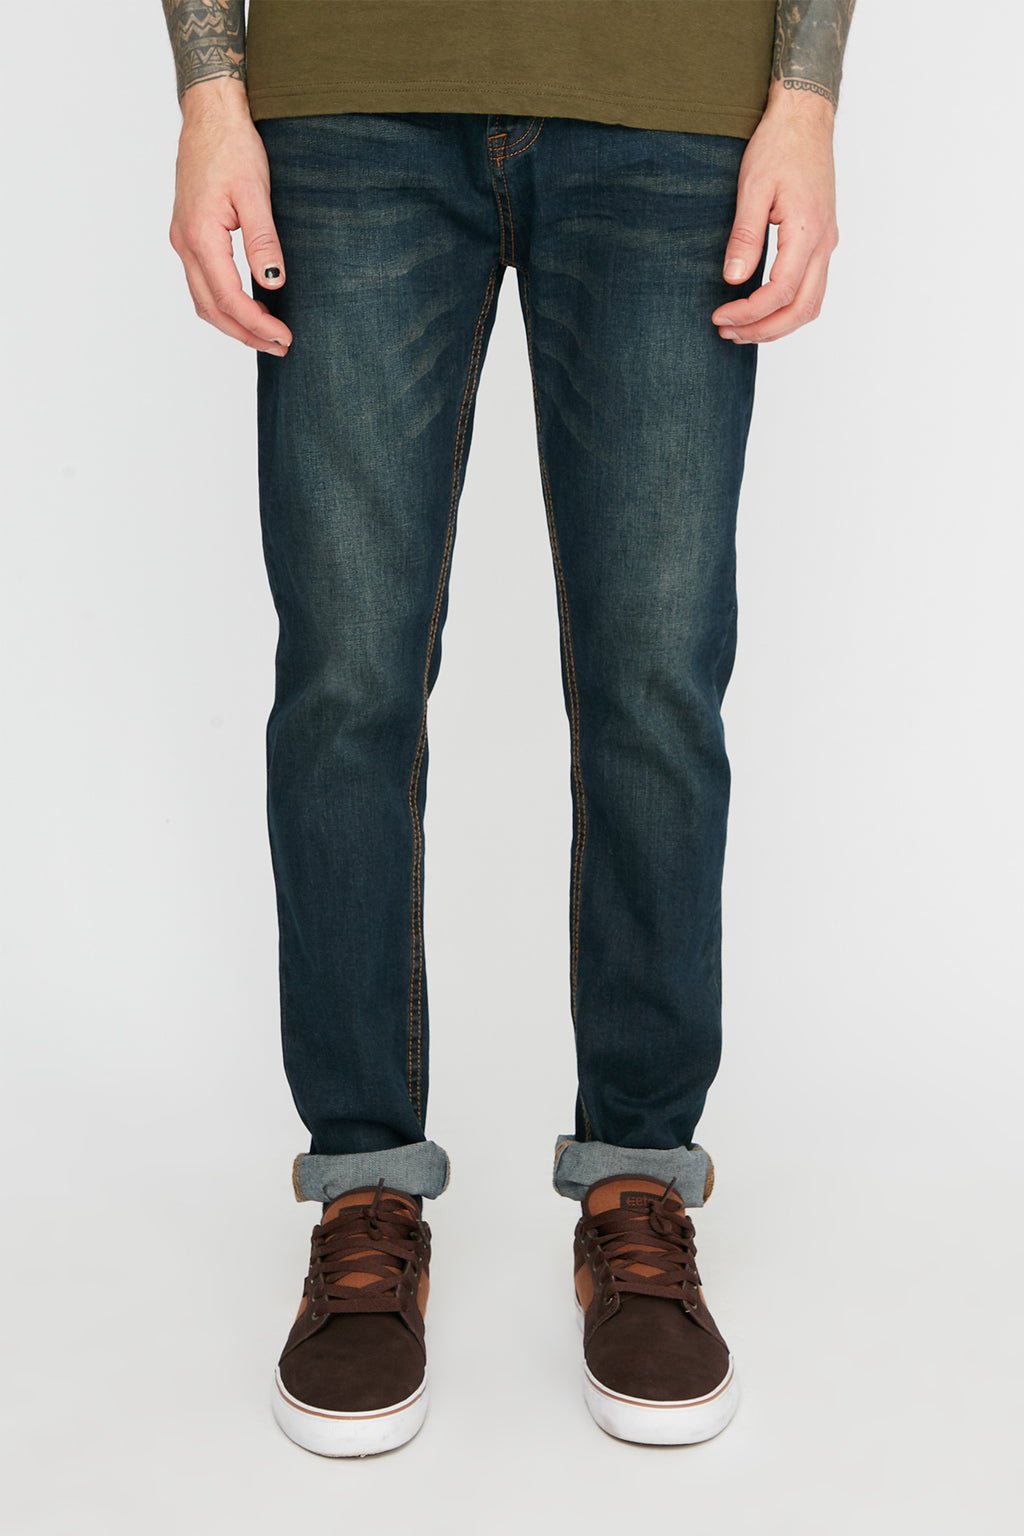 Zoo York Mens Skinny Dark Wash Jeans